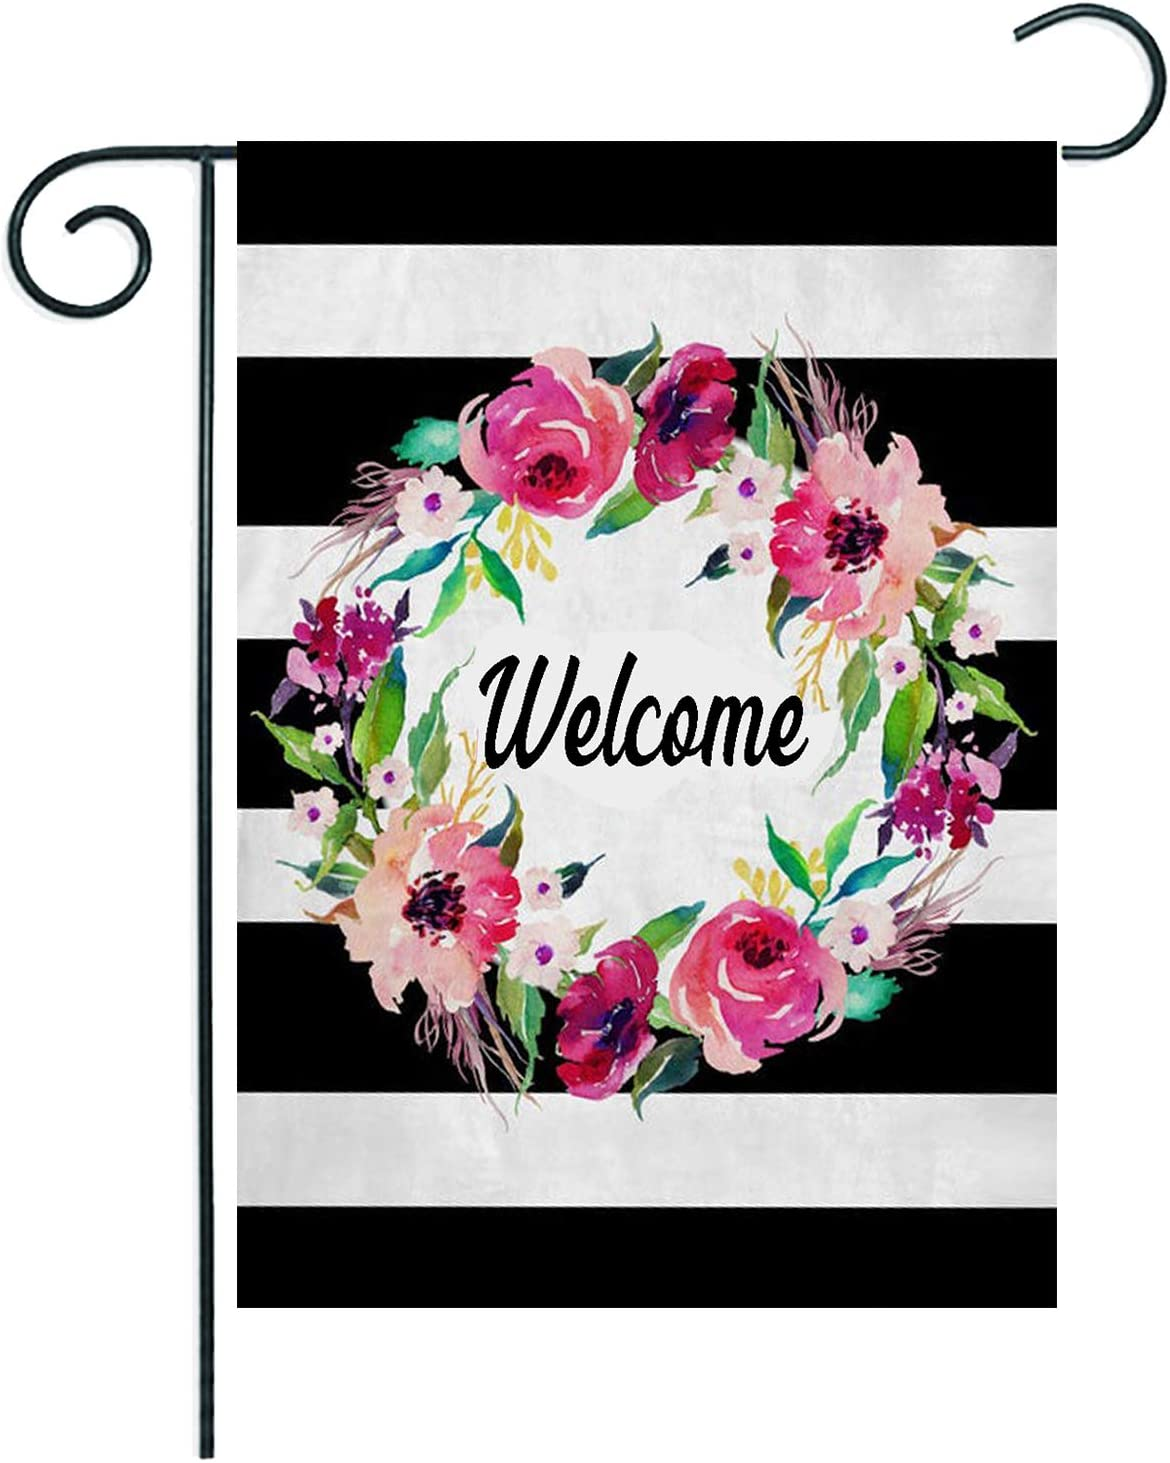 Welcome Wreath Spring Garden Flag 12.5x18 Inch Vertical Double Sided, ArtStudy Black White Stripes Floral Lawn Yard Flag, Small Outdoor Happy Spring Flag Decor, Thanksgiving Housewarming Wedding Gift